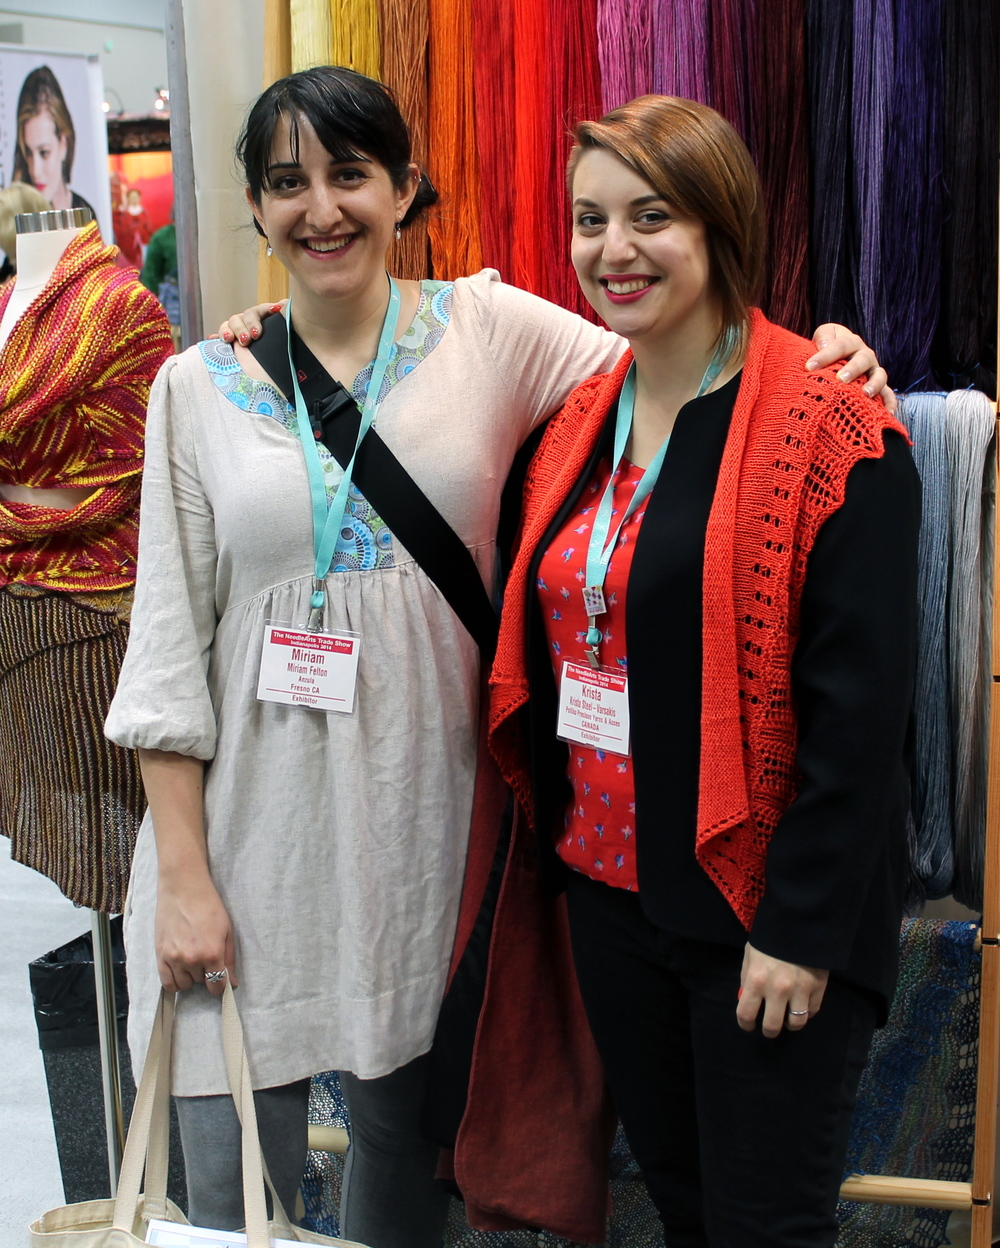 Miriam Felton and Krista in front of lovely Ancient Arts yarn!